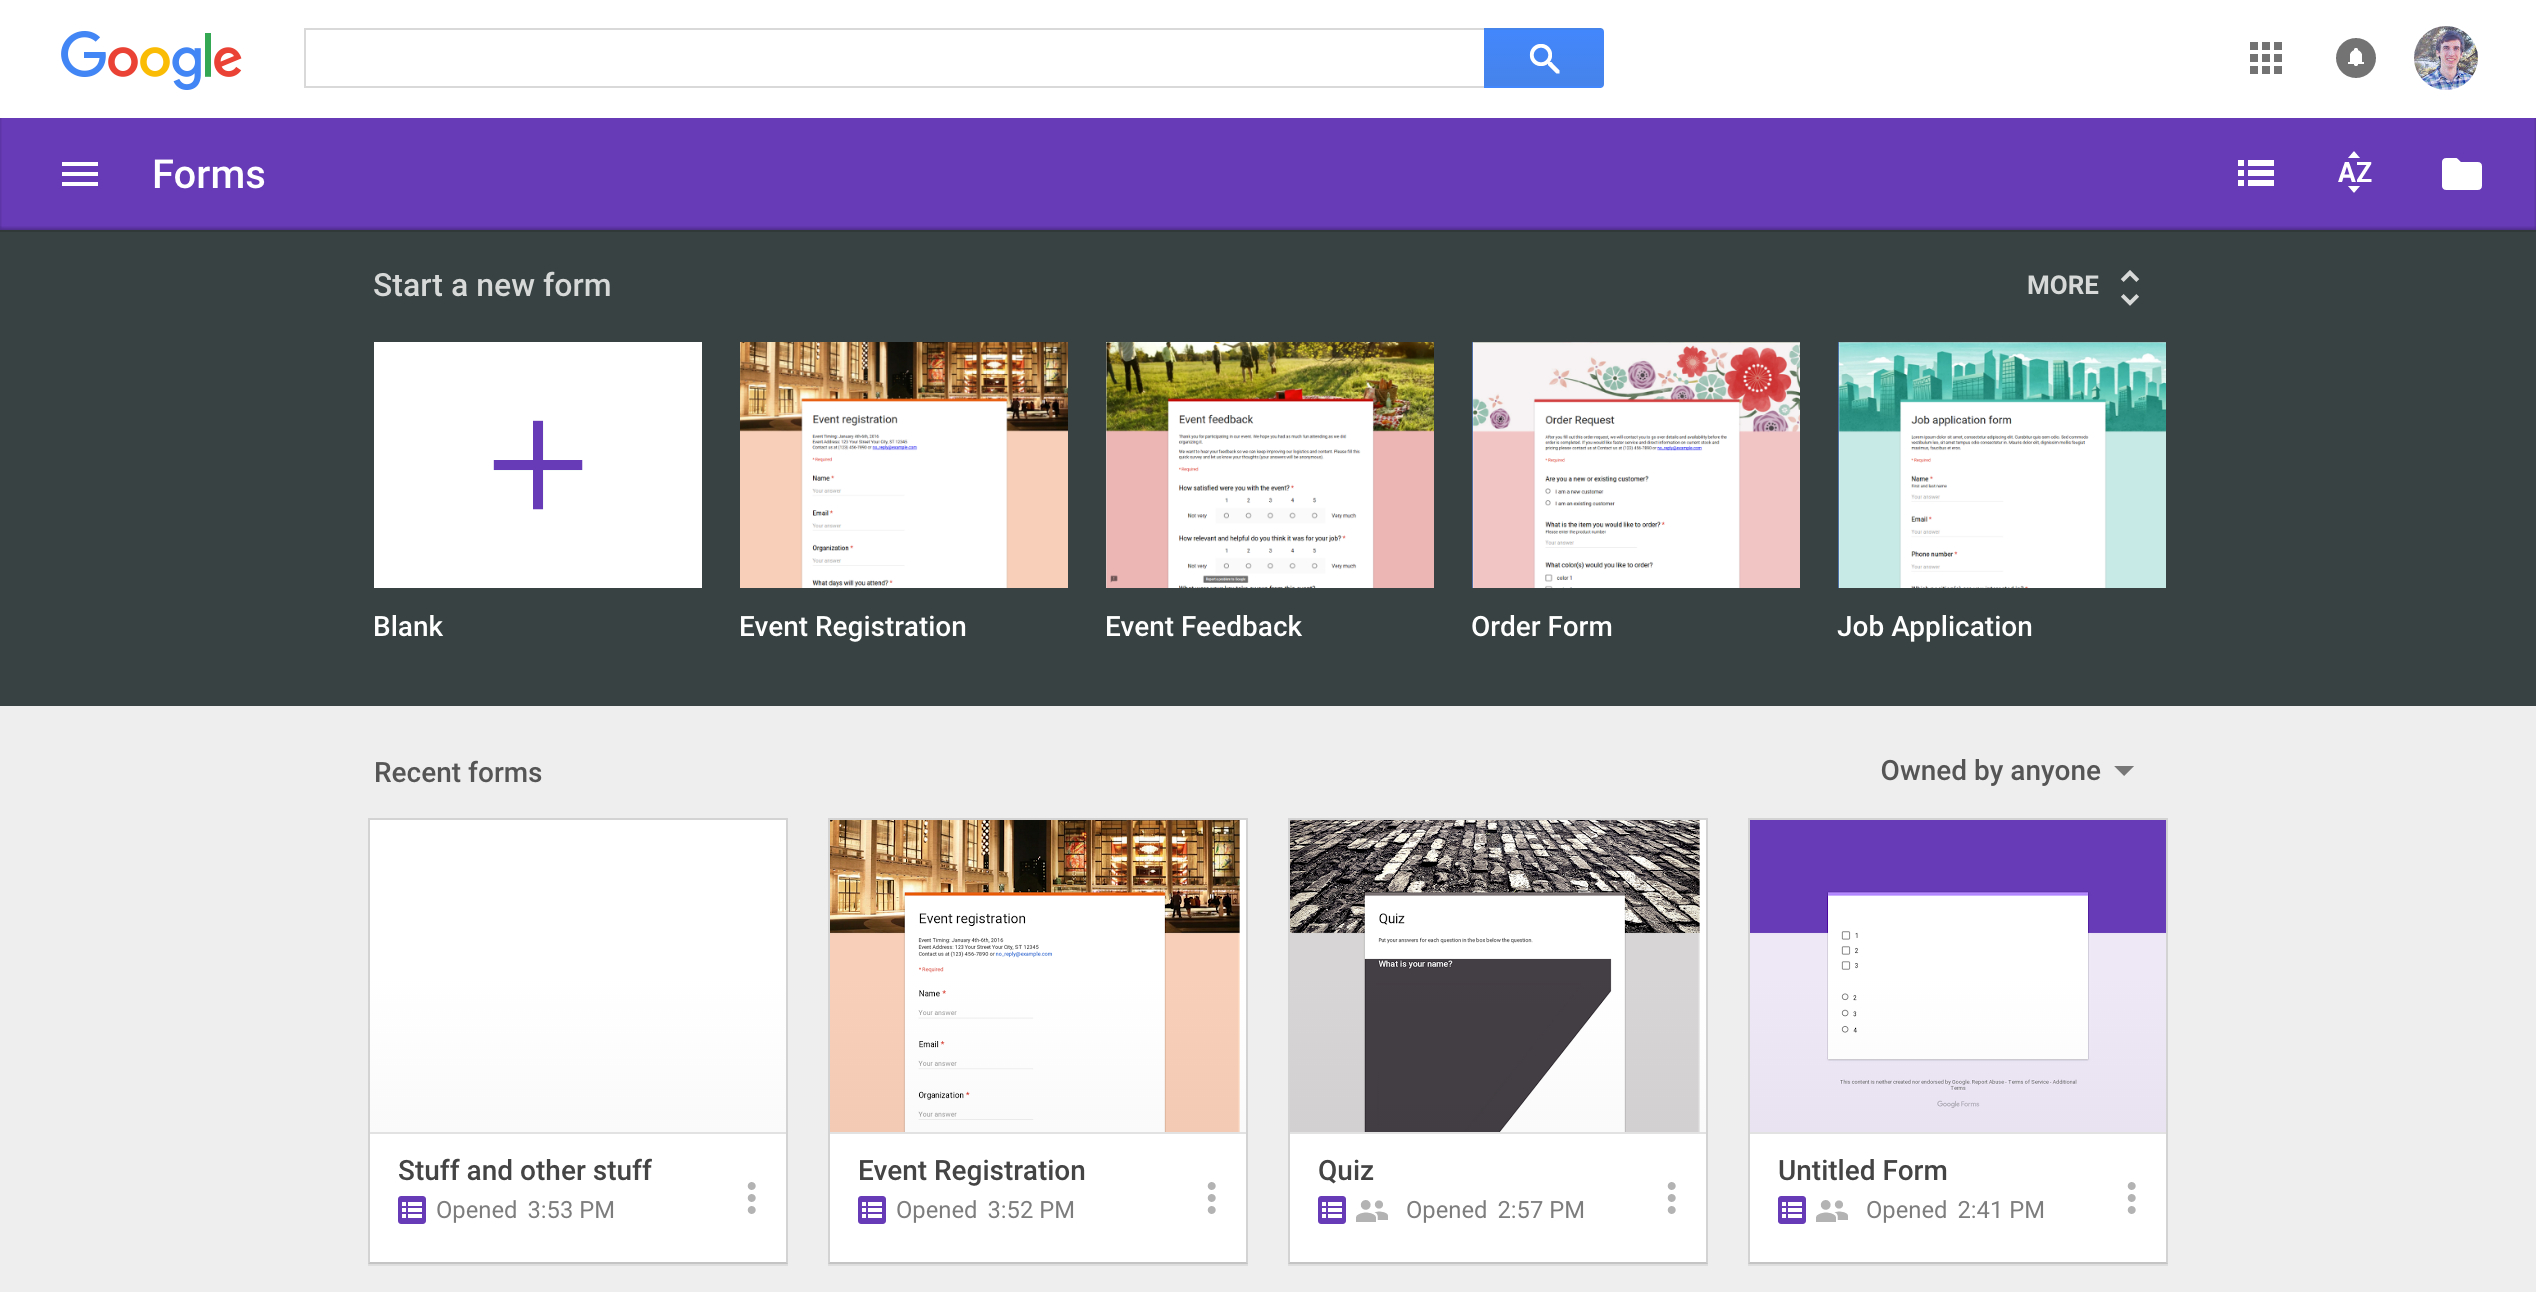 Create Google Form From Spreadsheet With Regard To Google Forms Guide: Everything You Need To Make Great Forms For Free